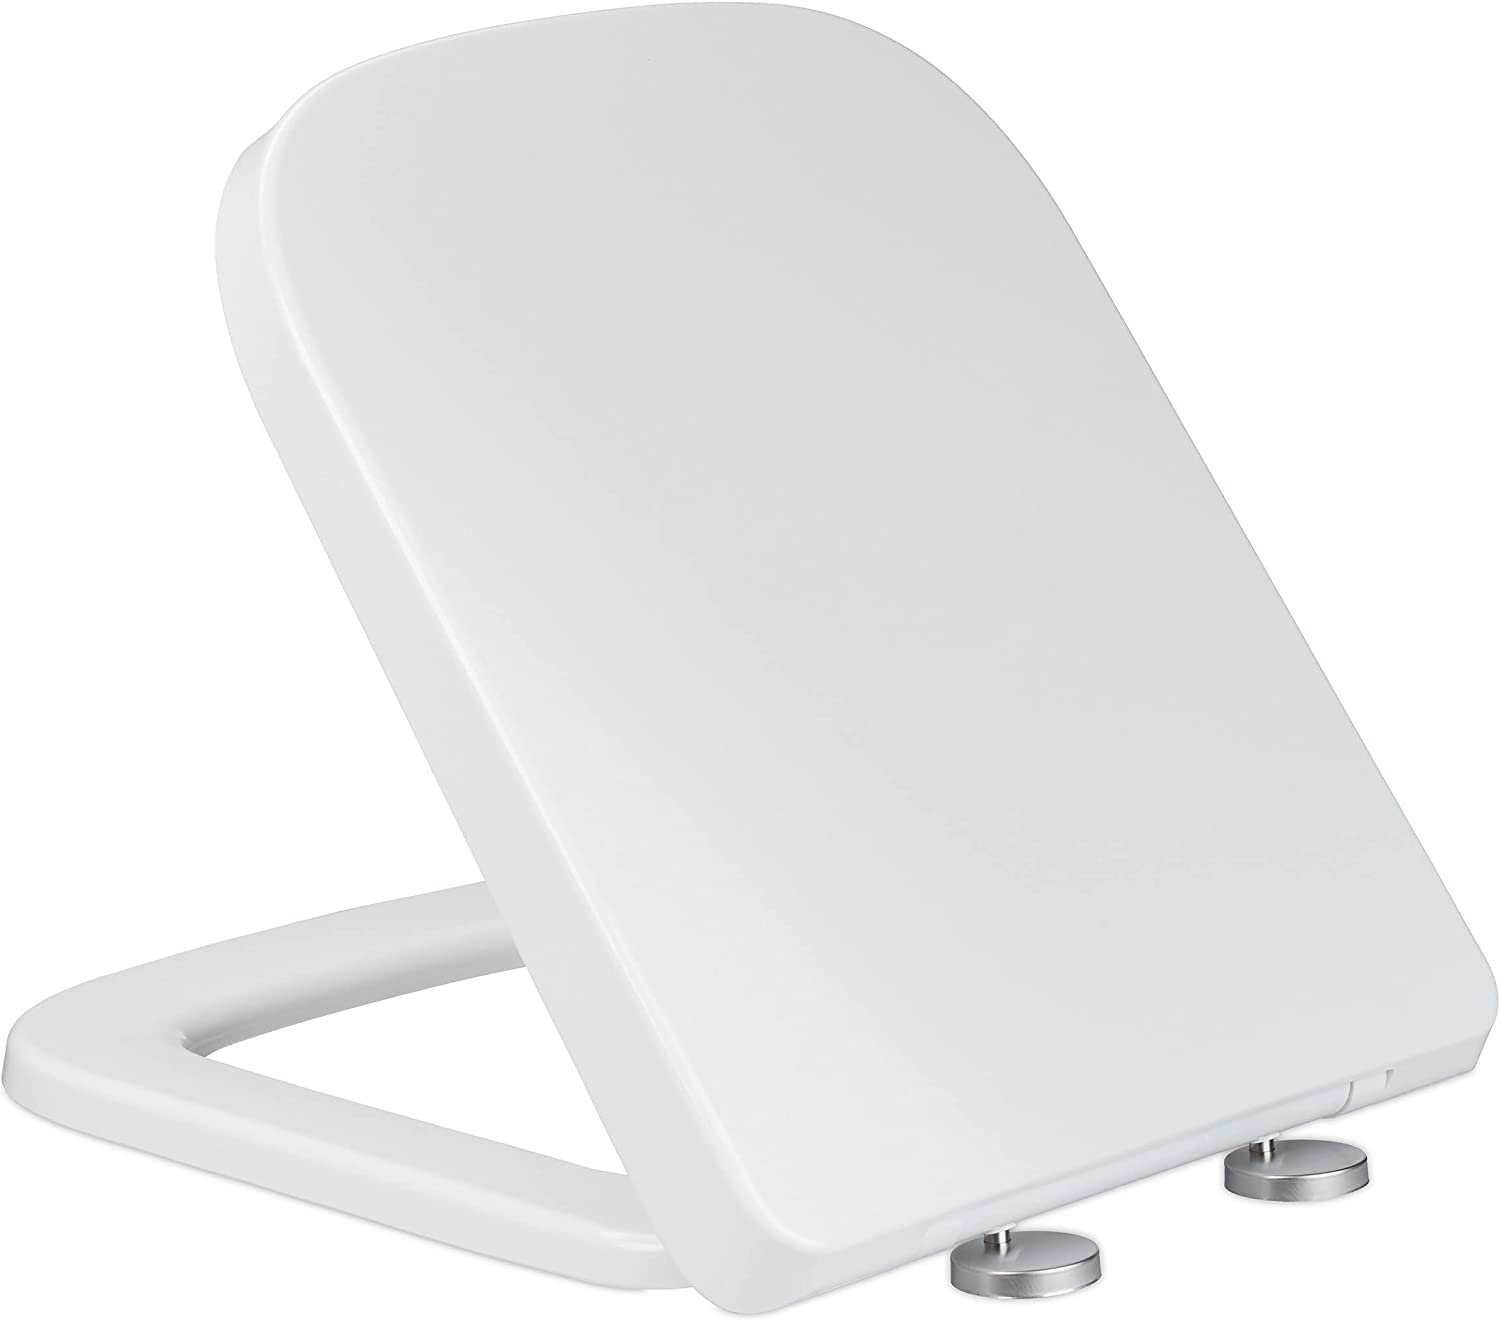 Relaxdays Toilet Seat with Soft-Close Mechanism Denver Mall Memphis Mall 35 D 43 c x W